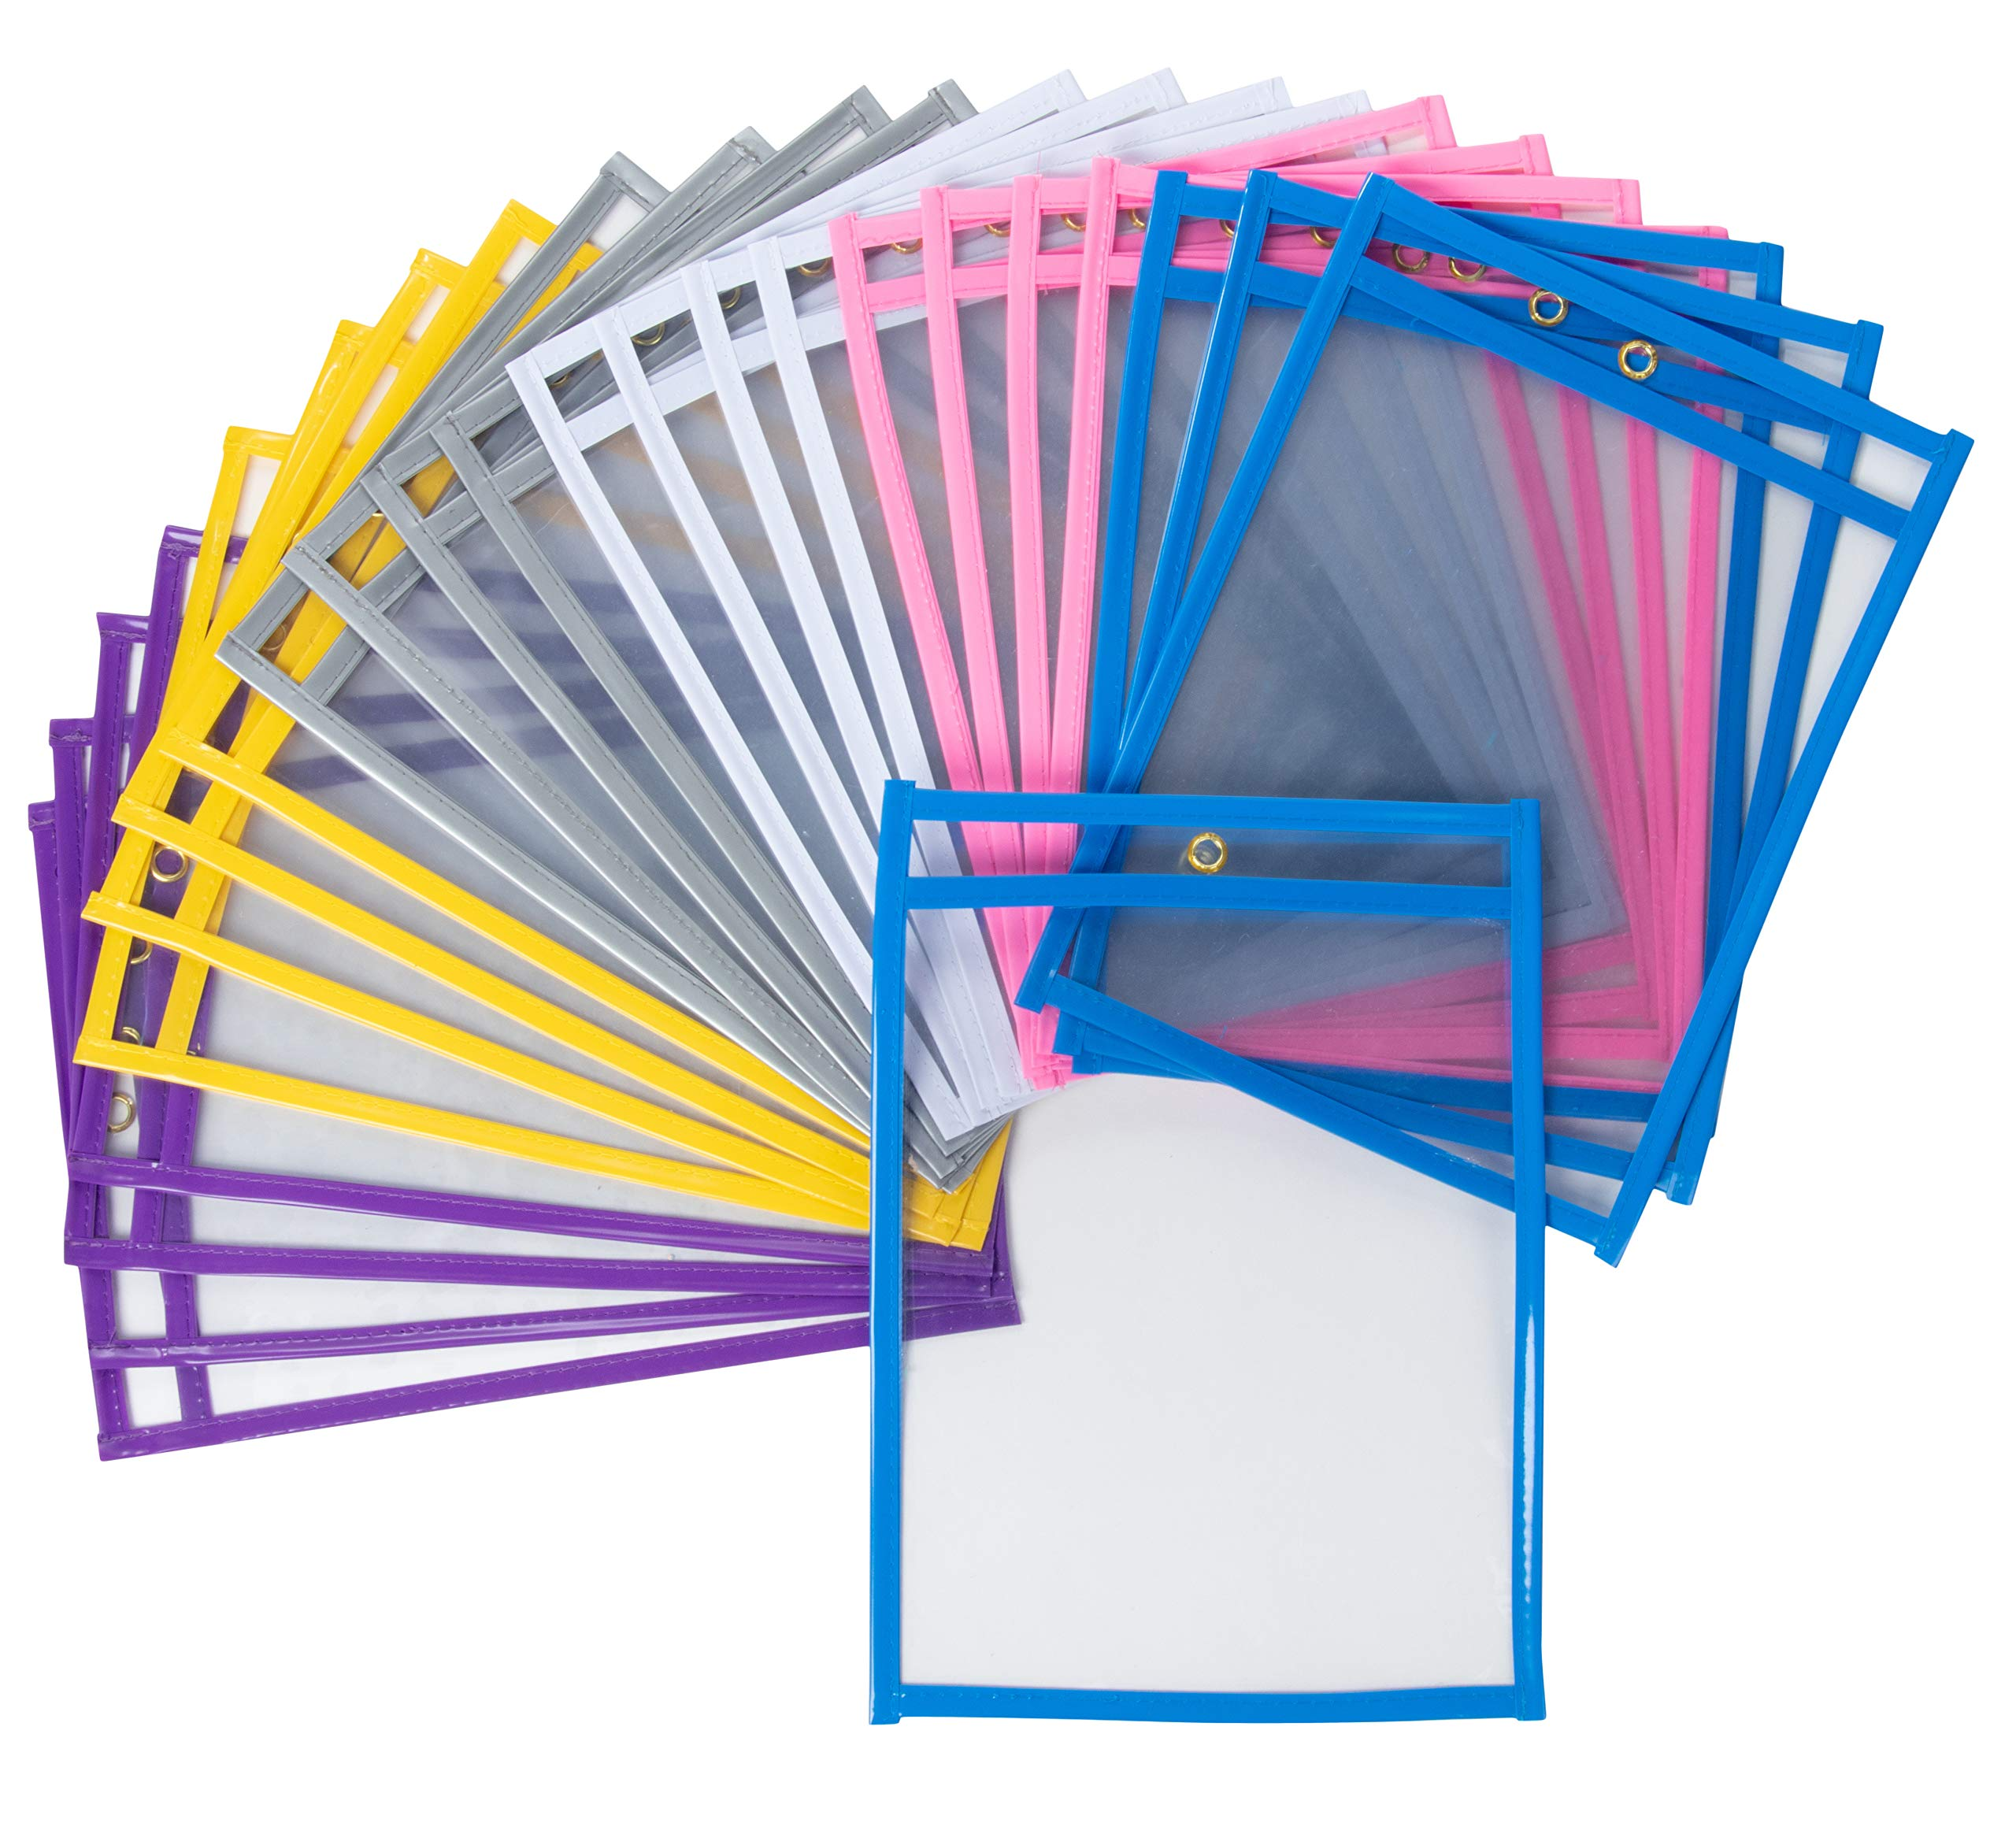 Juvale Kids Dry Erase Reusable Plastic Pocket Sleeves (24-Pack), Fits 9 x 12 Paper